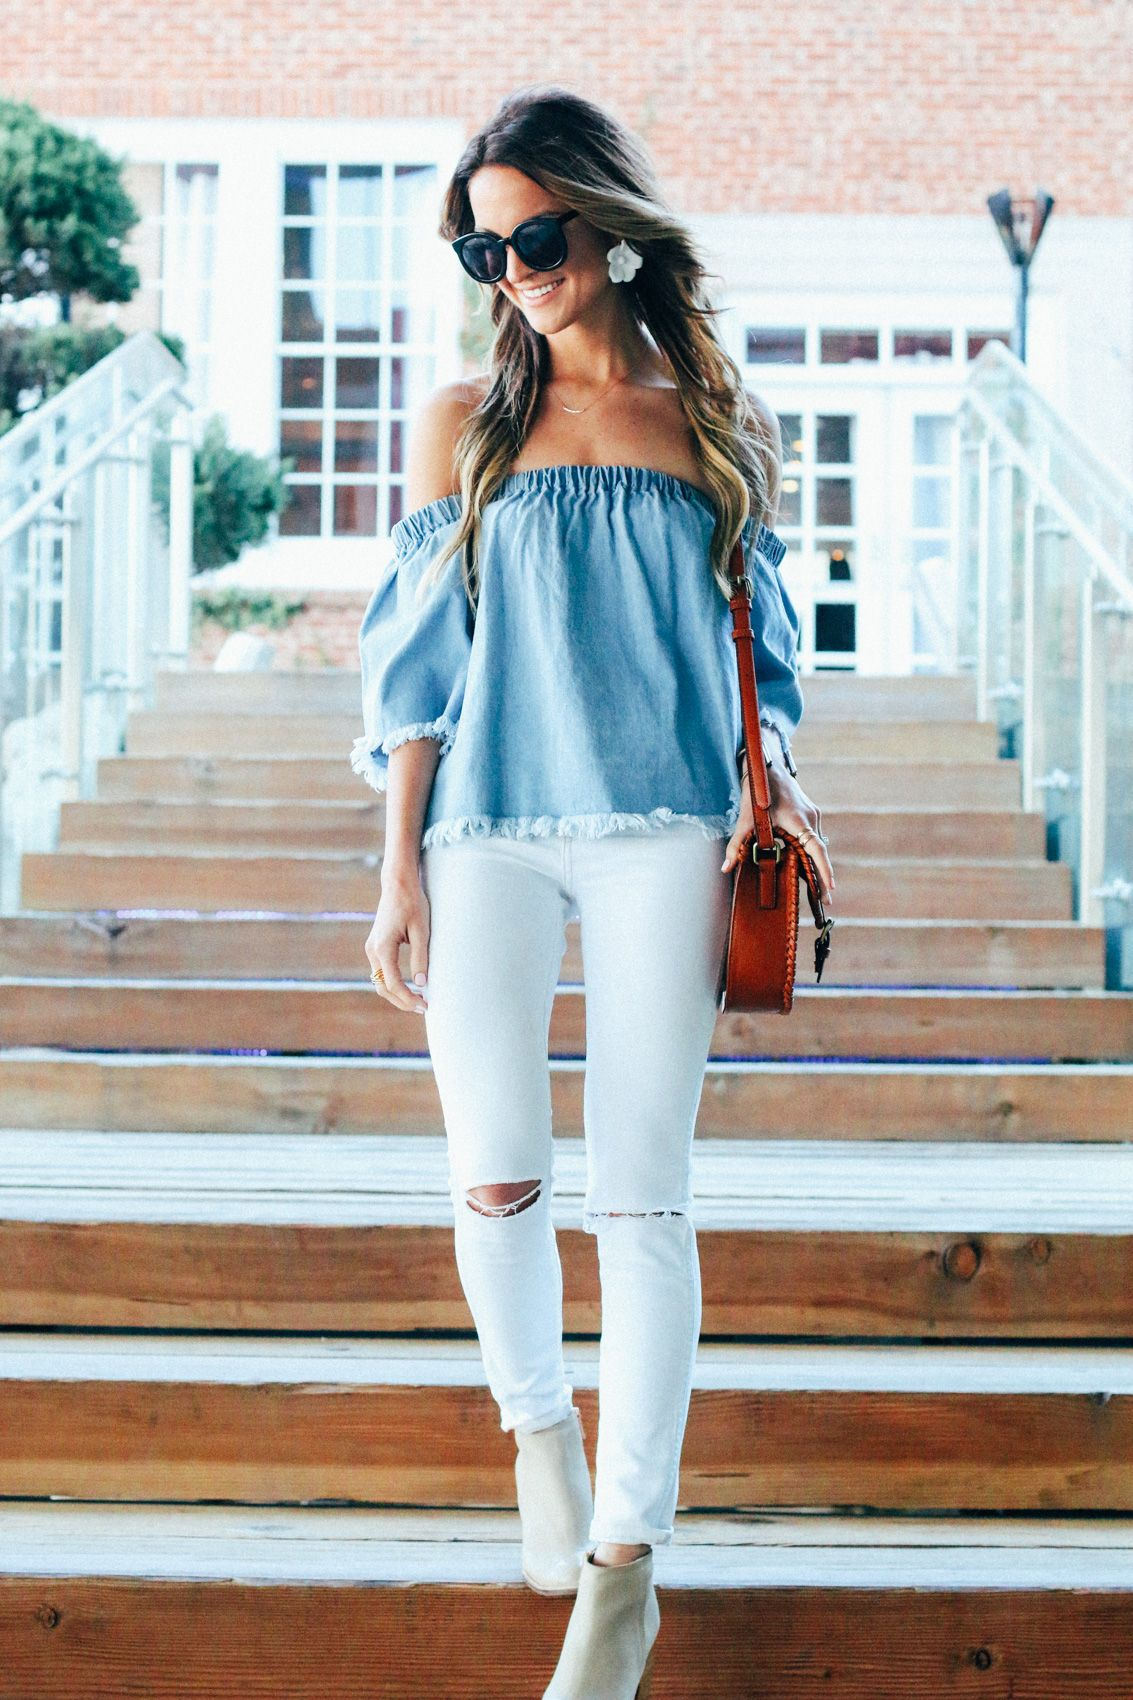 e21f1e6ac1a0ad denim off the shoulder top with white skinnies for an easy spring look